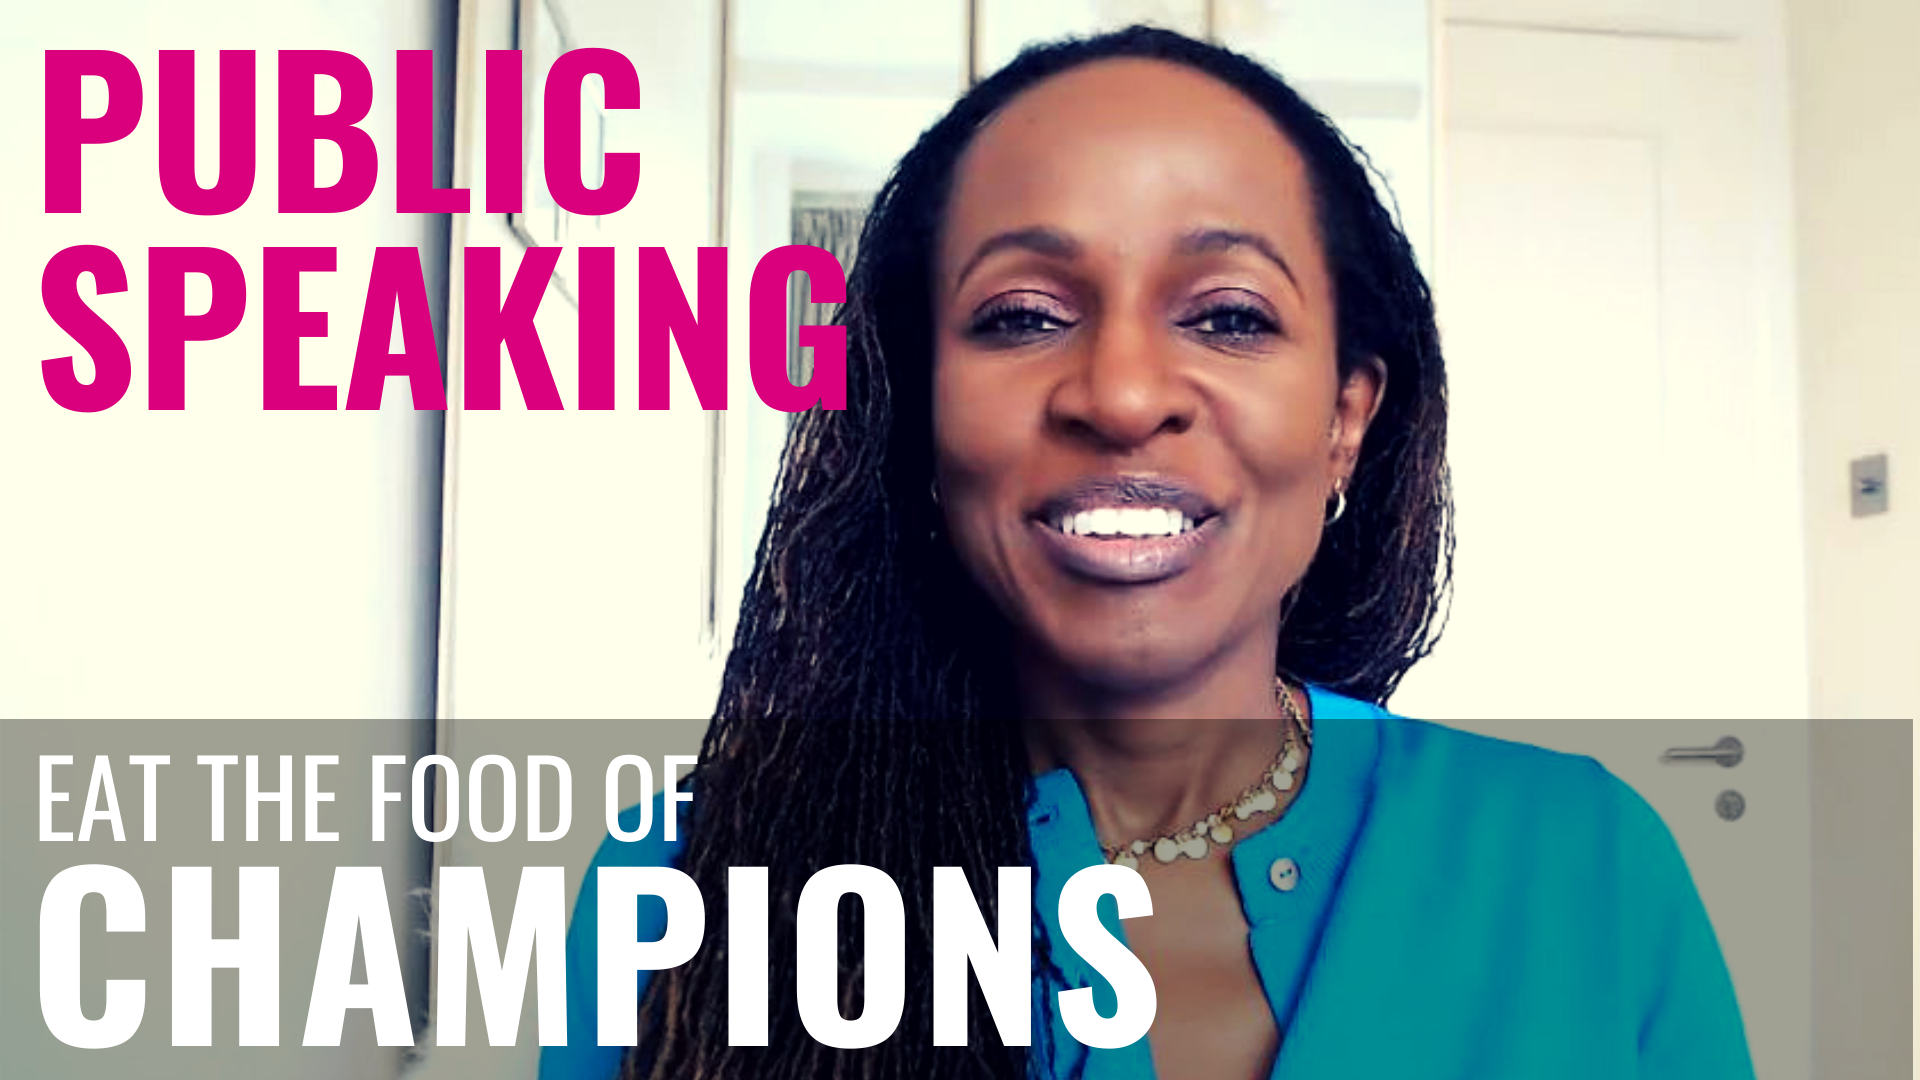 PUBLIC SPEAKING – Eat the food of CHAMPIONS